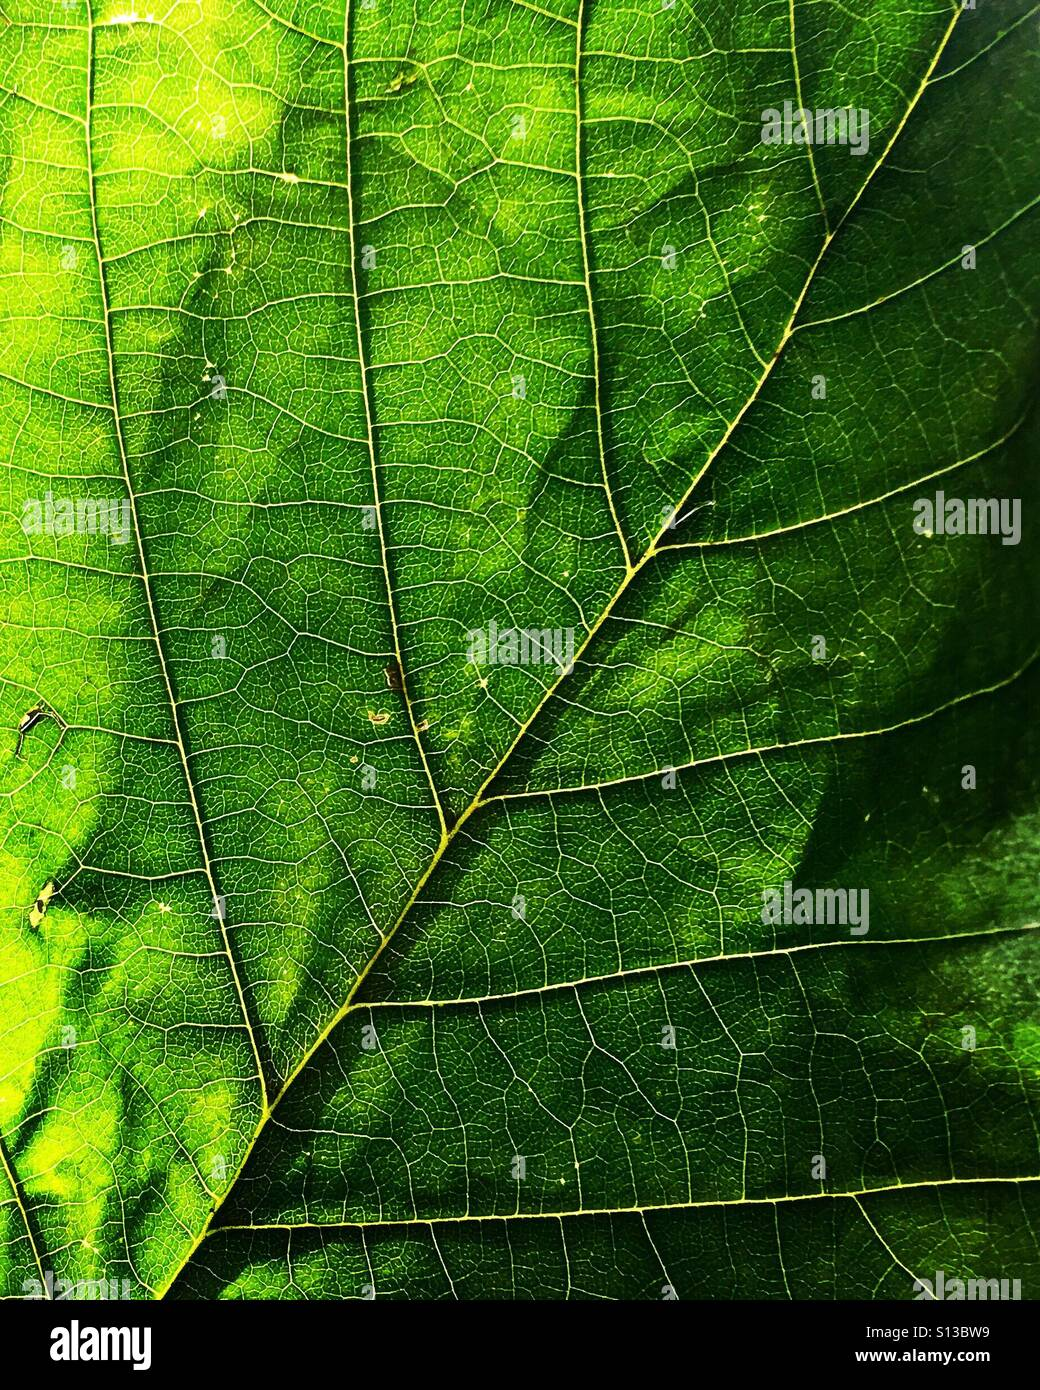 Close-up of a green leaf. - Stock Image